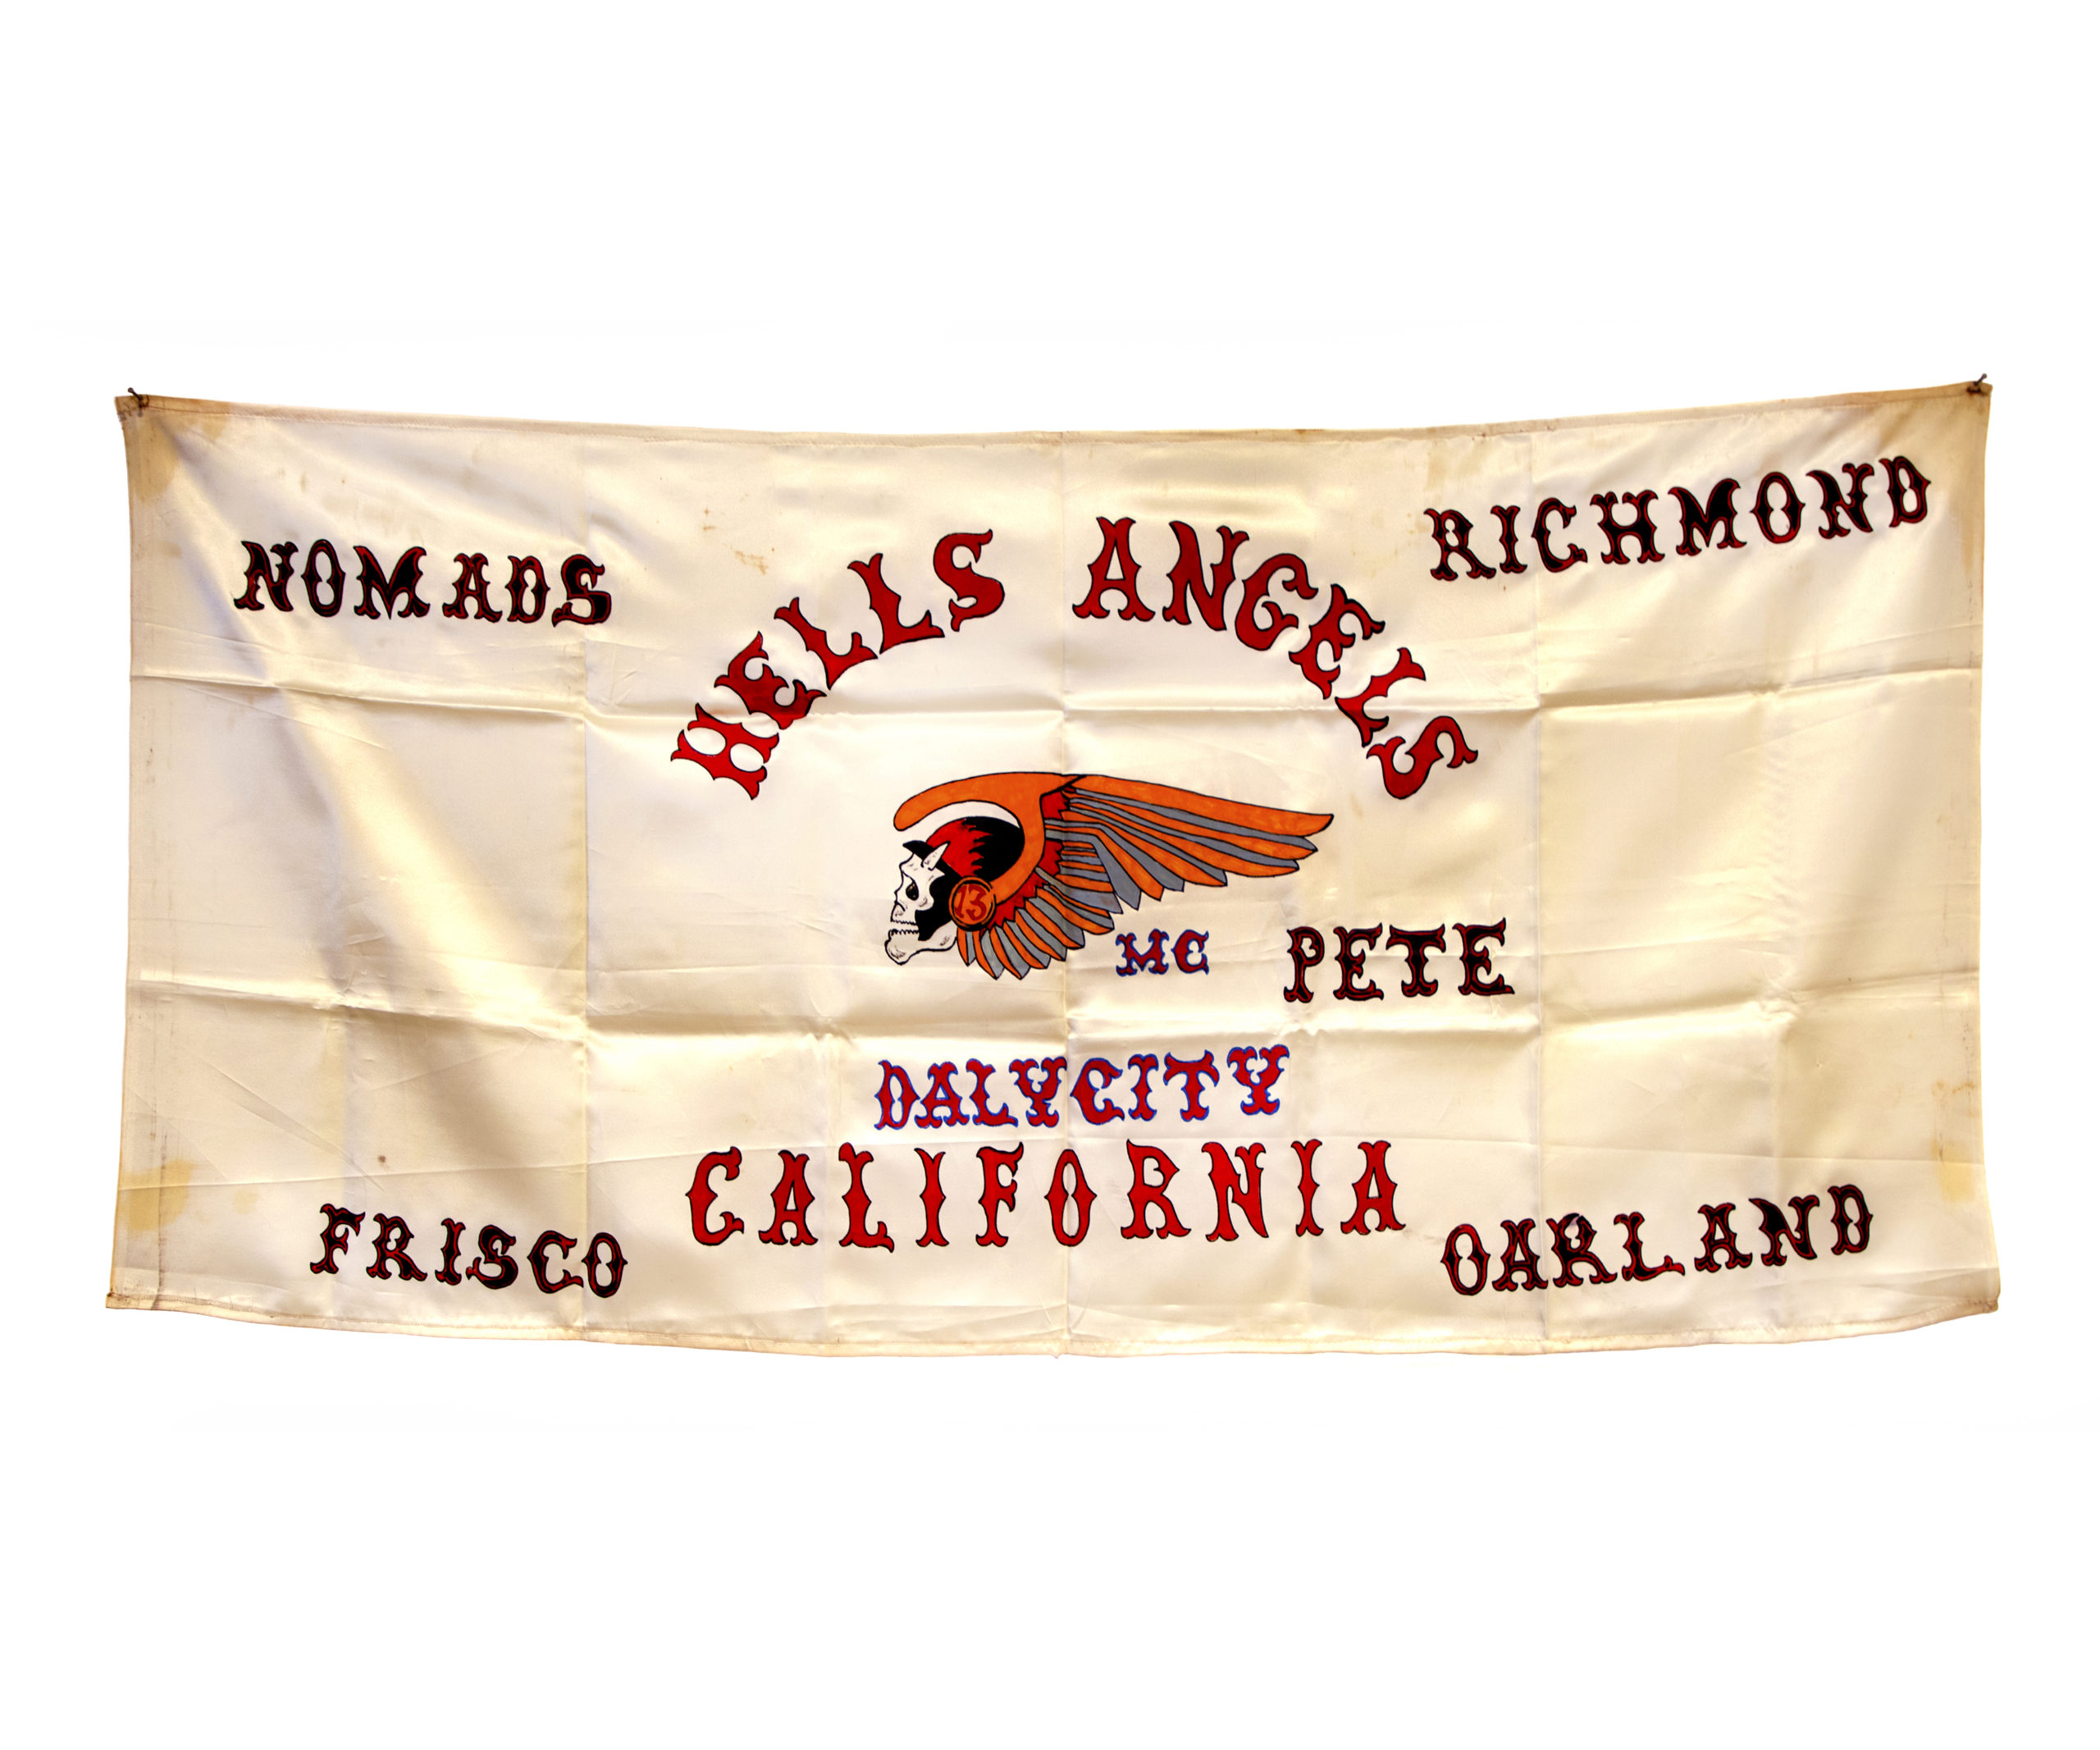 The Daly City Flag From Hells Angels 69′